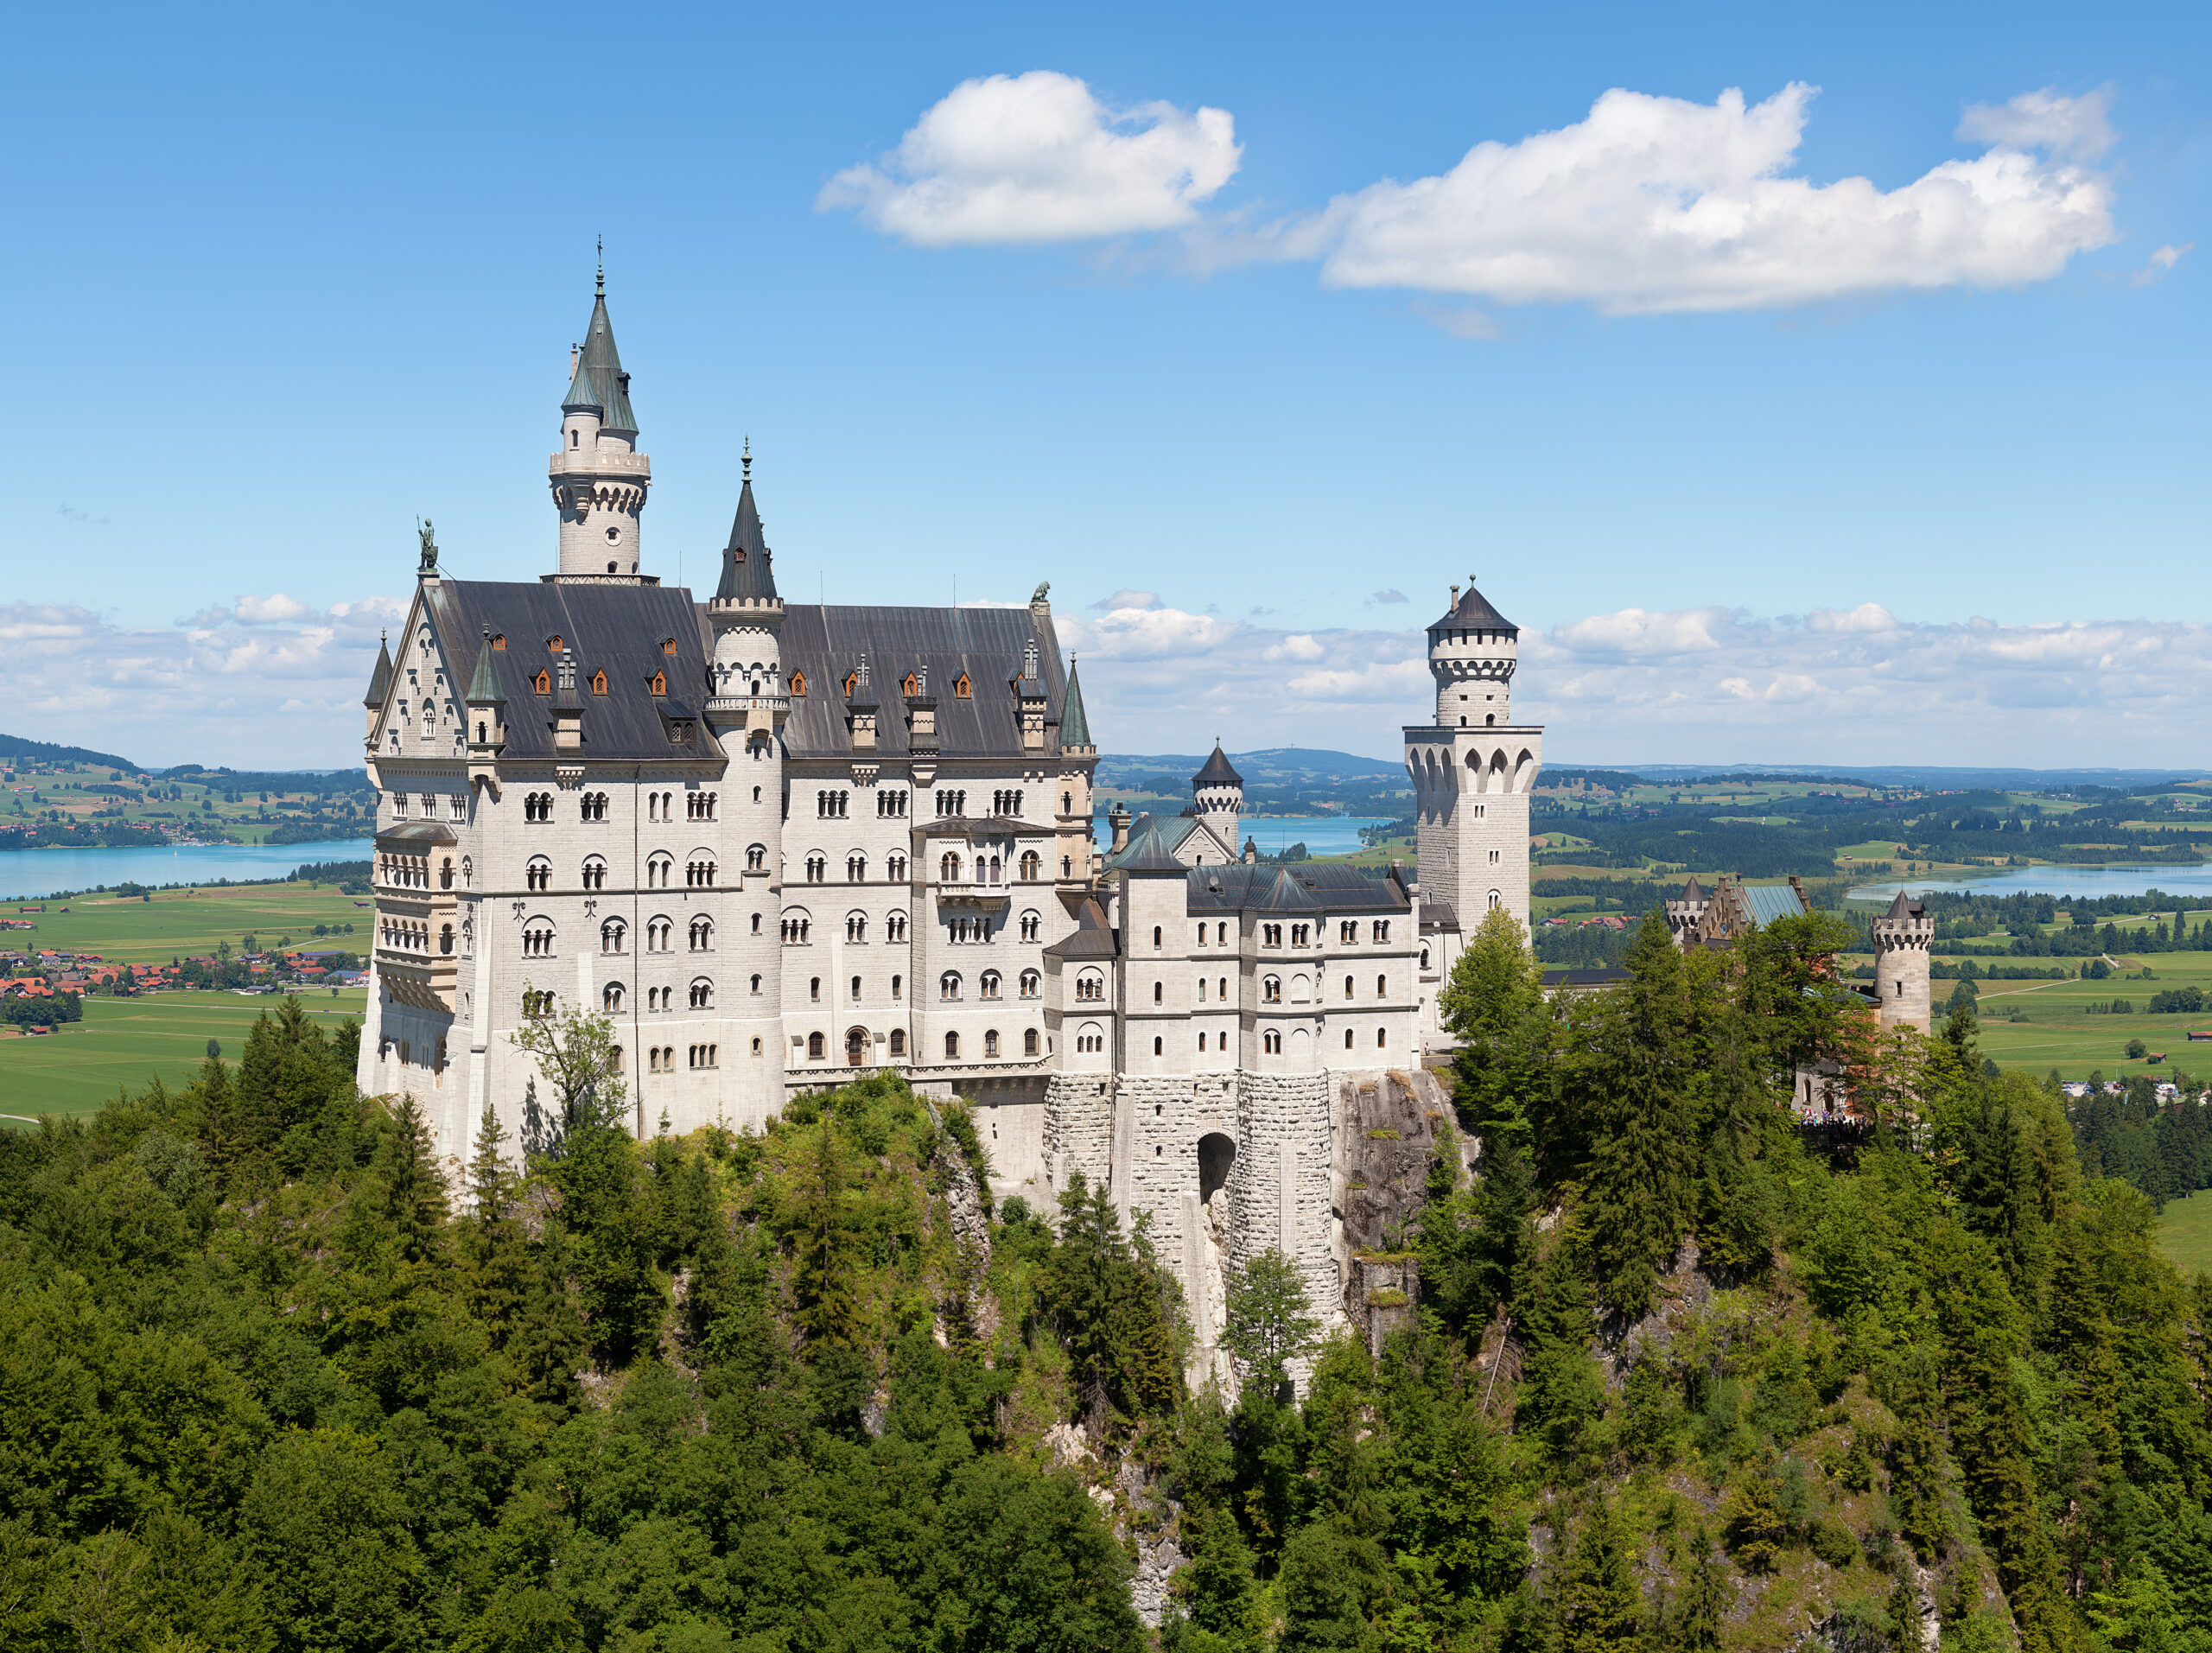 Ought To Repairing Neuschwanstein Castle Background Take 8 Actions?